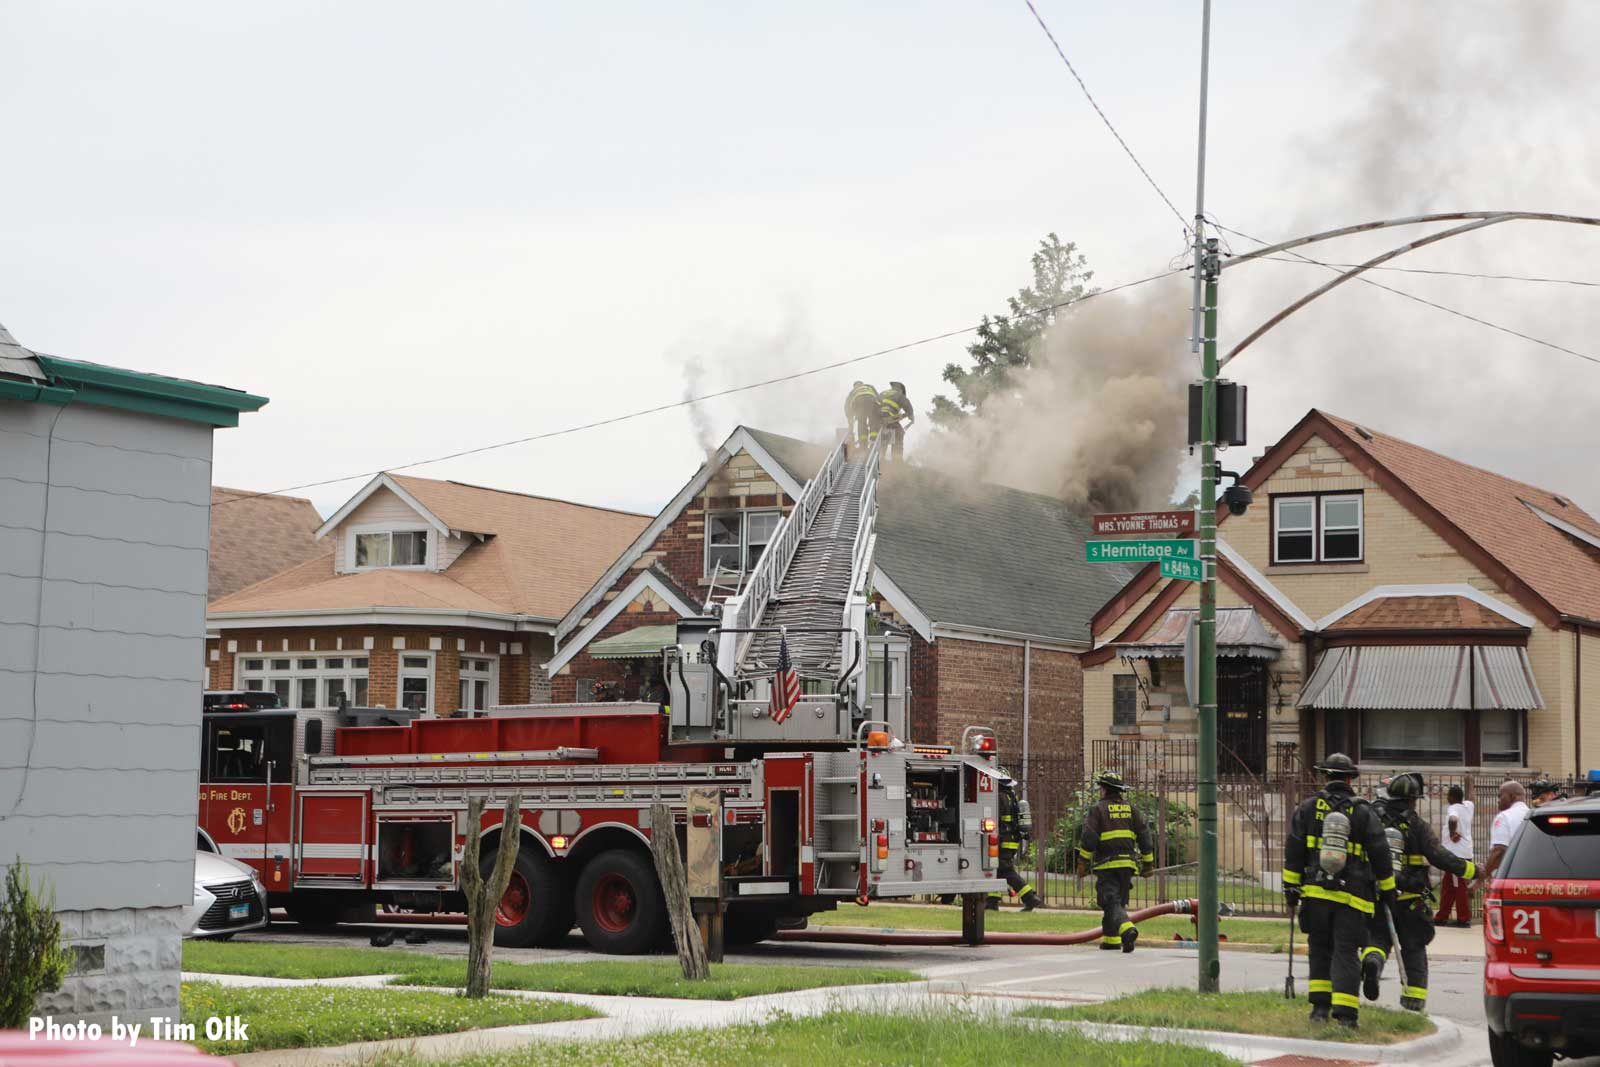 Chicago fire truck at house fire